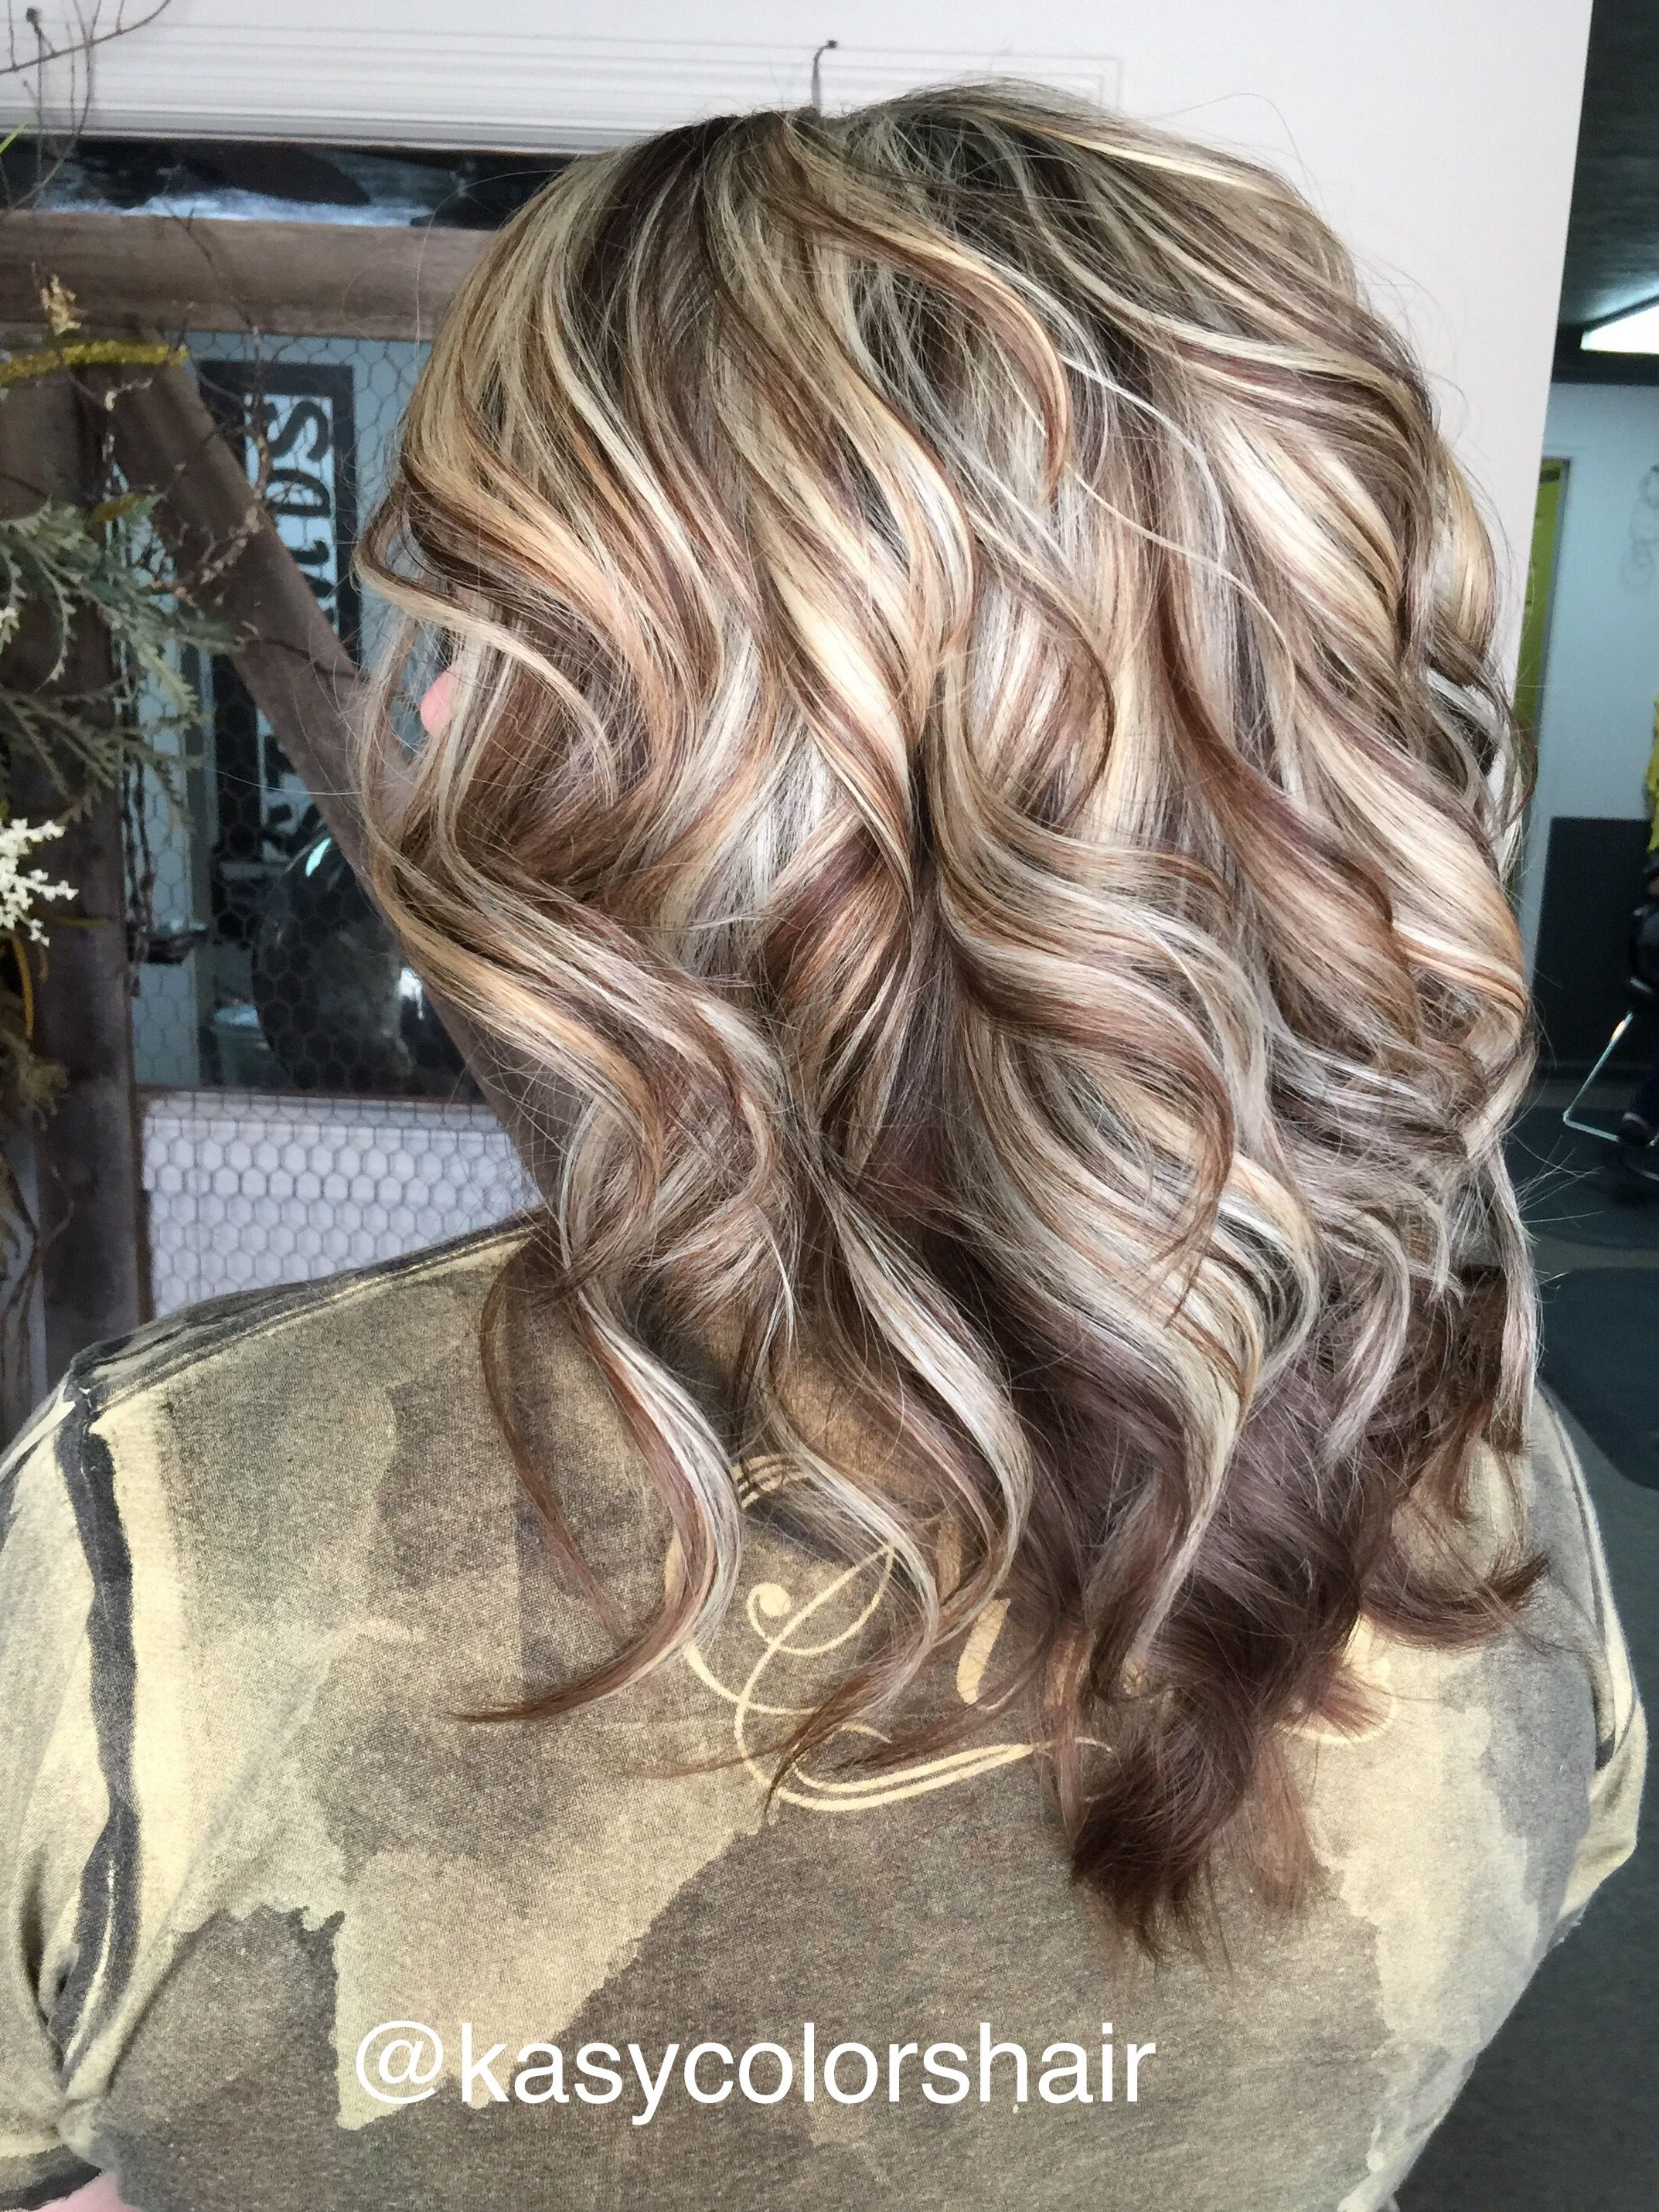 Blonde highlight u brown lowlight kasycolorshair lewisburgtn